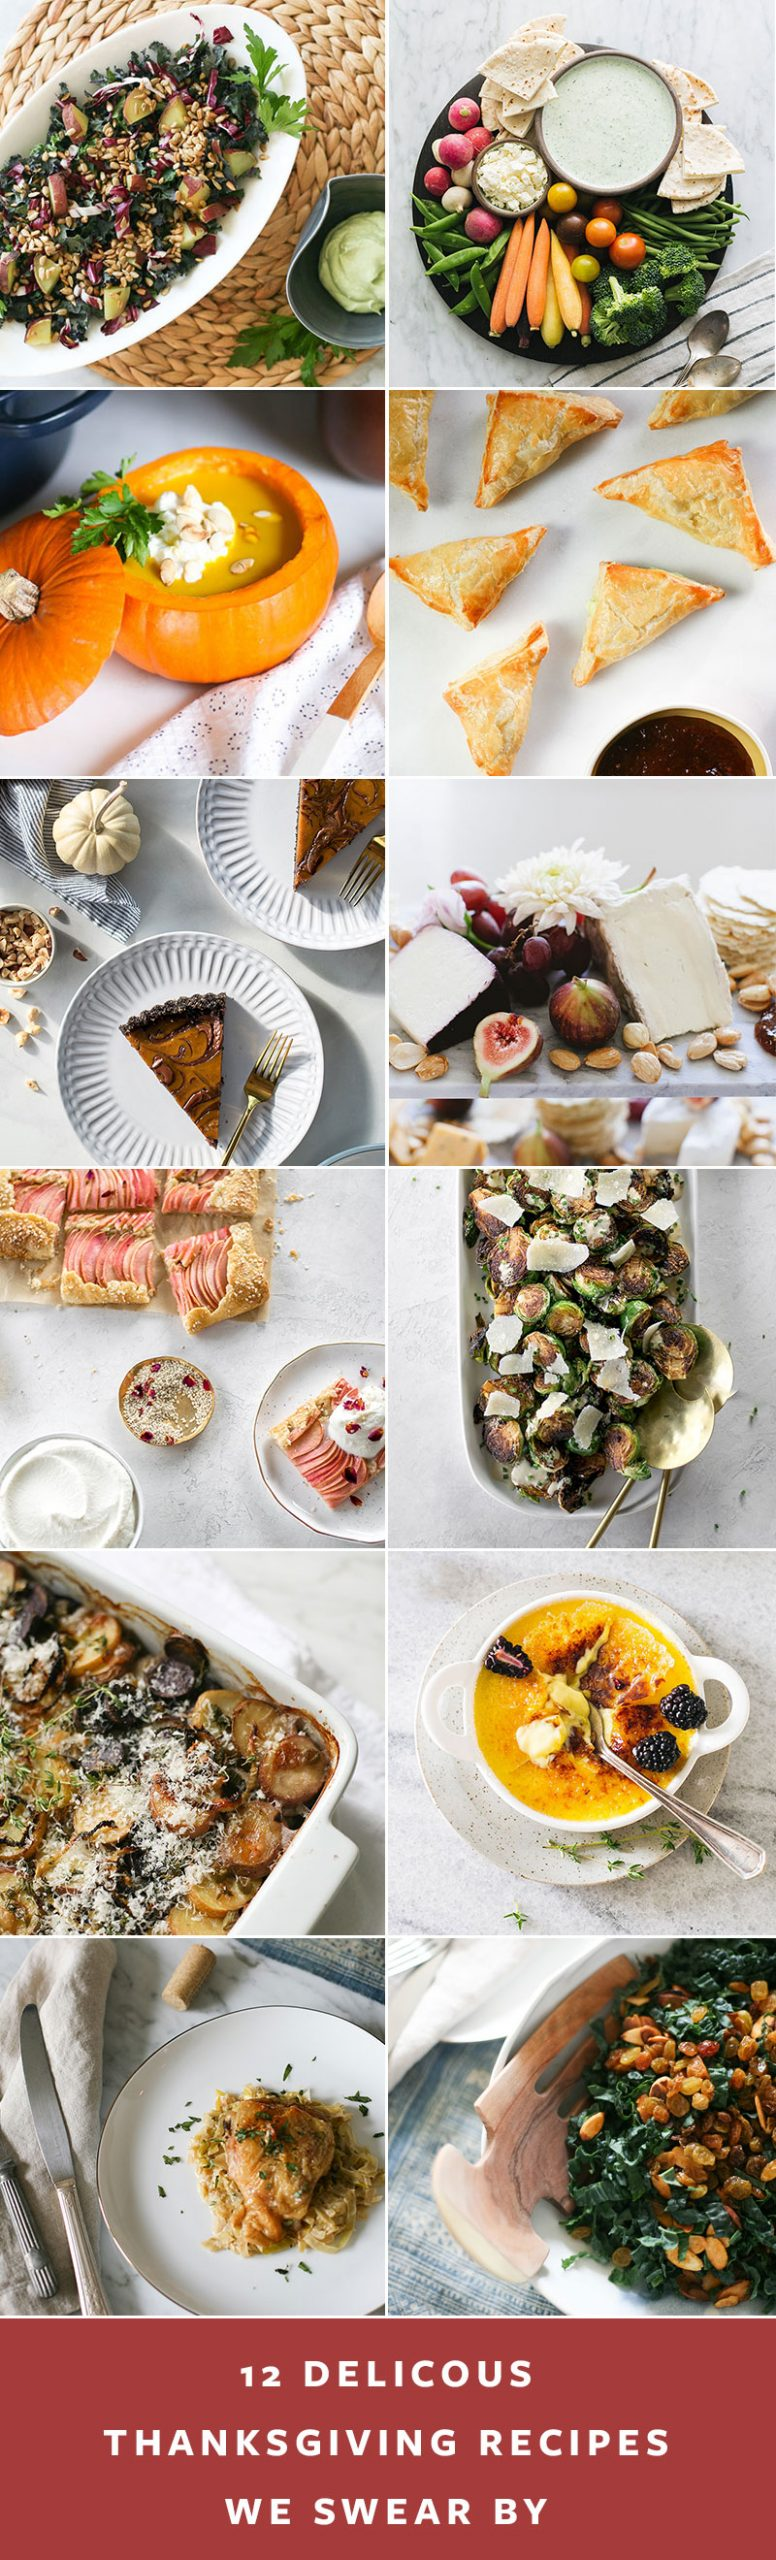 12 Delicious Thanksgiving Recipes We Swear By! Recipes including cheese board, potato gratin, winter kale salad, an apple galette, and more! #recipes #holidayrecipes #thanksgiving #holiday #holidayrecipes #christmas #thanksgiving #thanksgivingdinner #hanksgivingdinnerideas #turkeyrecipe #turkeydinner #sidedish #holidaydessert